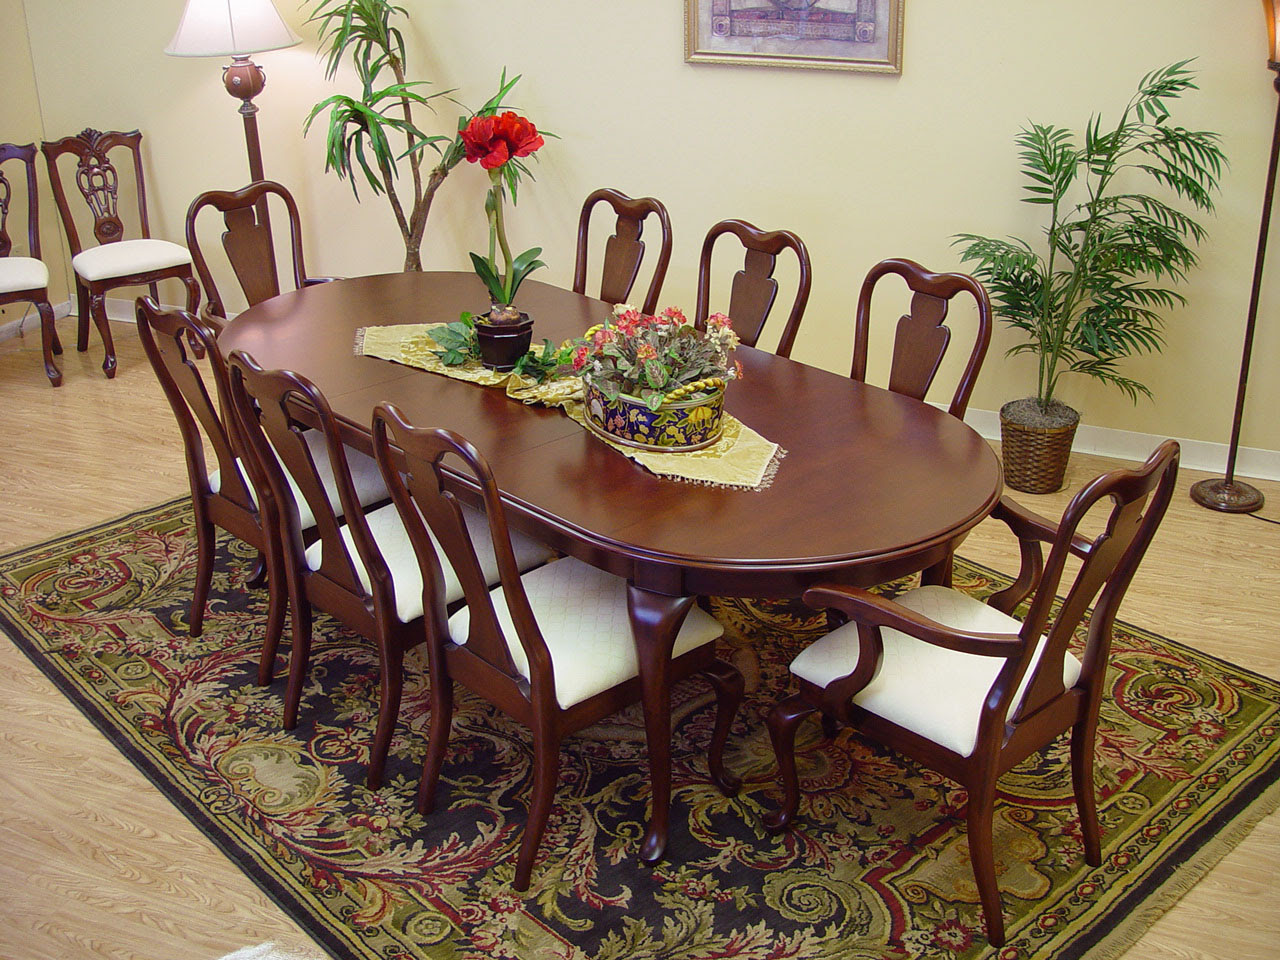 mahogany dining table and chair set ebay the table and chairs have a